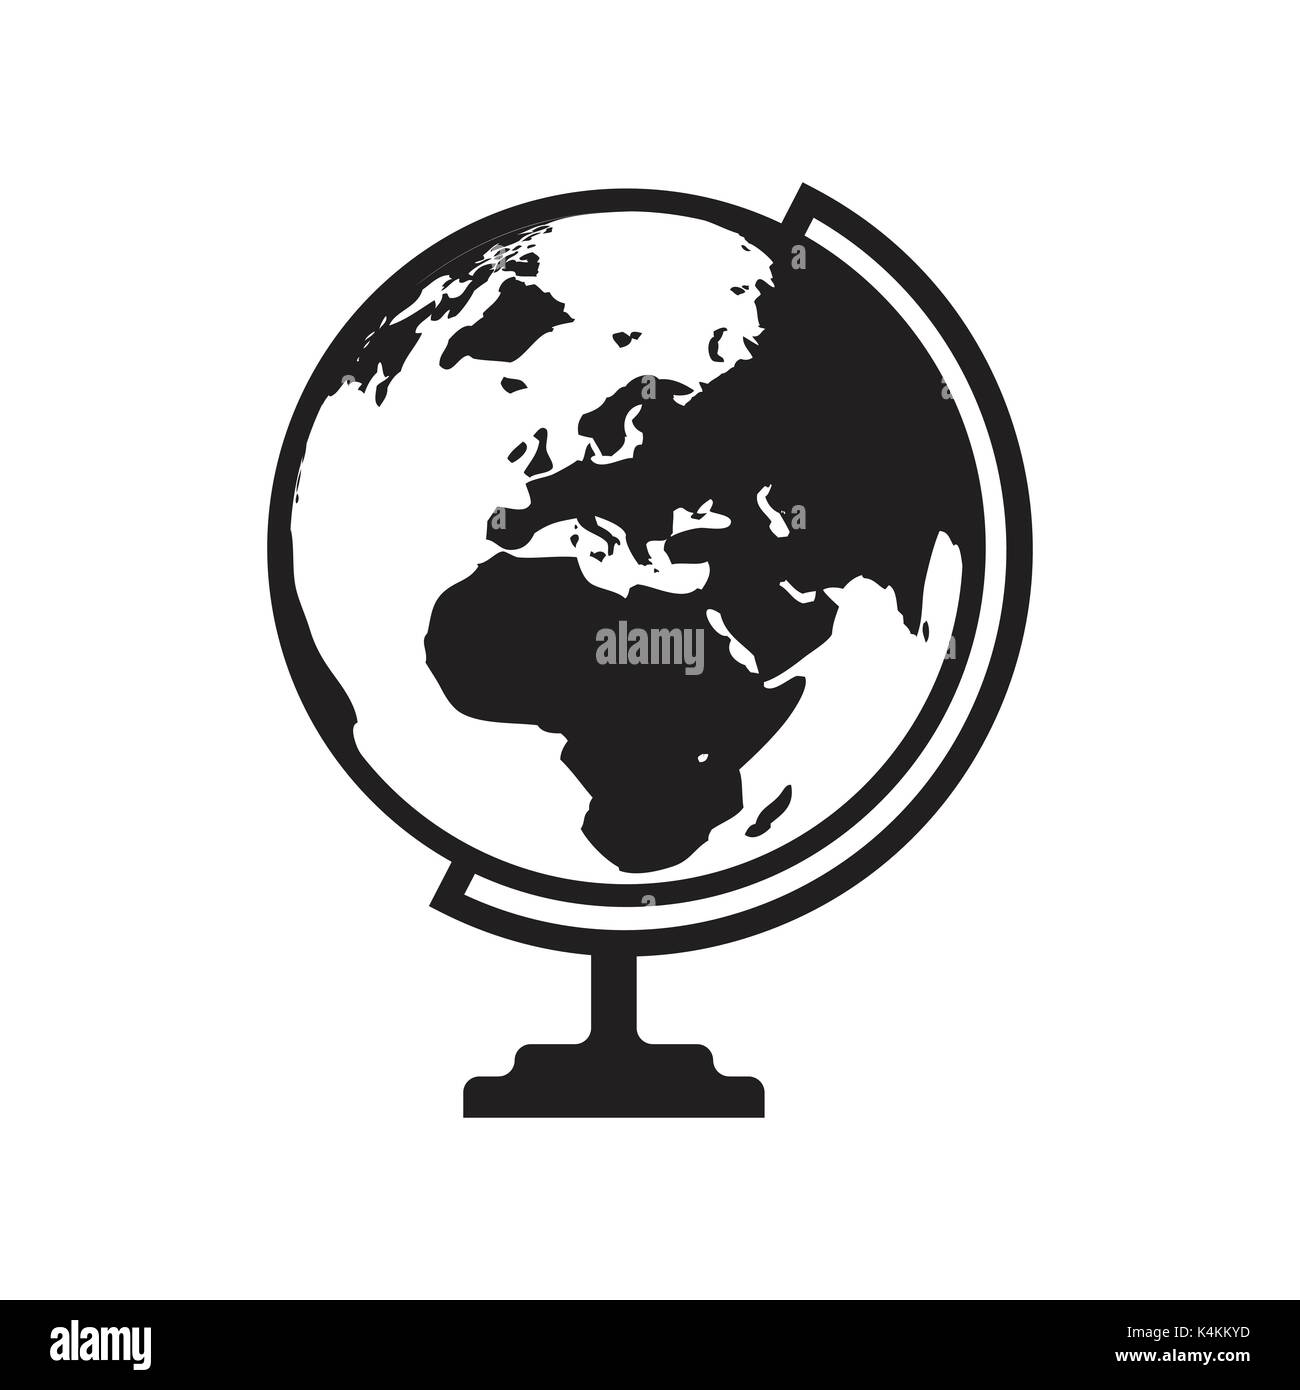 Globe icon vector with Asia Africa and Europe map. Flat icon isolated on the white background. Vector illustration. Stock Vector